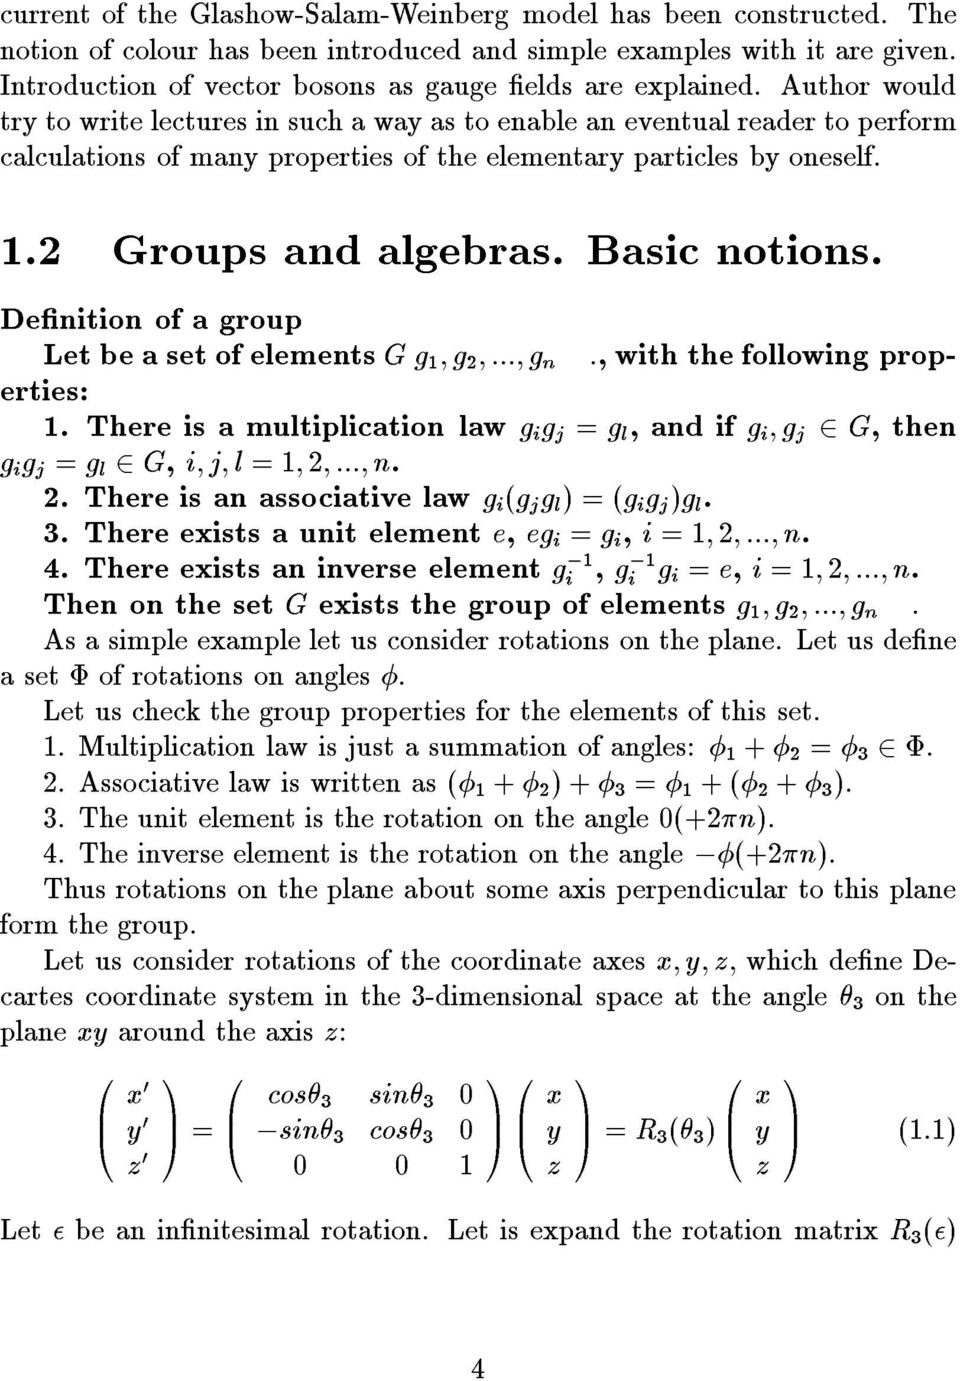 uthor would tr to write lectures in such a wa as to enable an eventual reader to perform calculations of man properties of the elementar particles b oneself..2 Groups and algebras. asic notions.